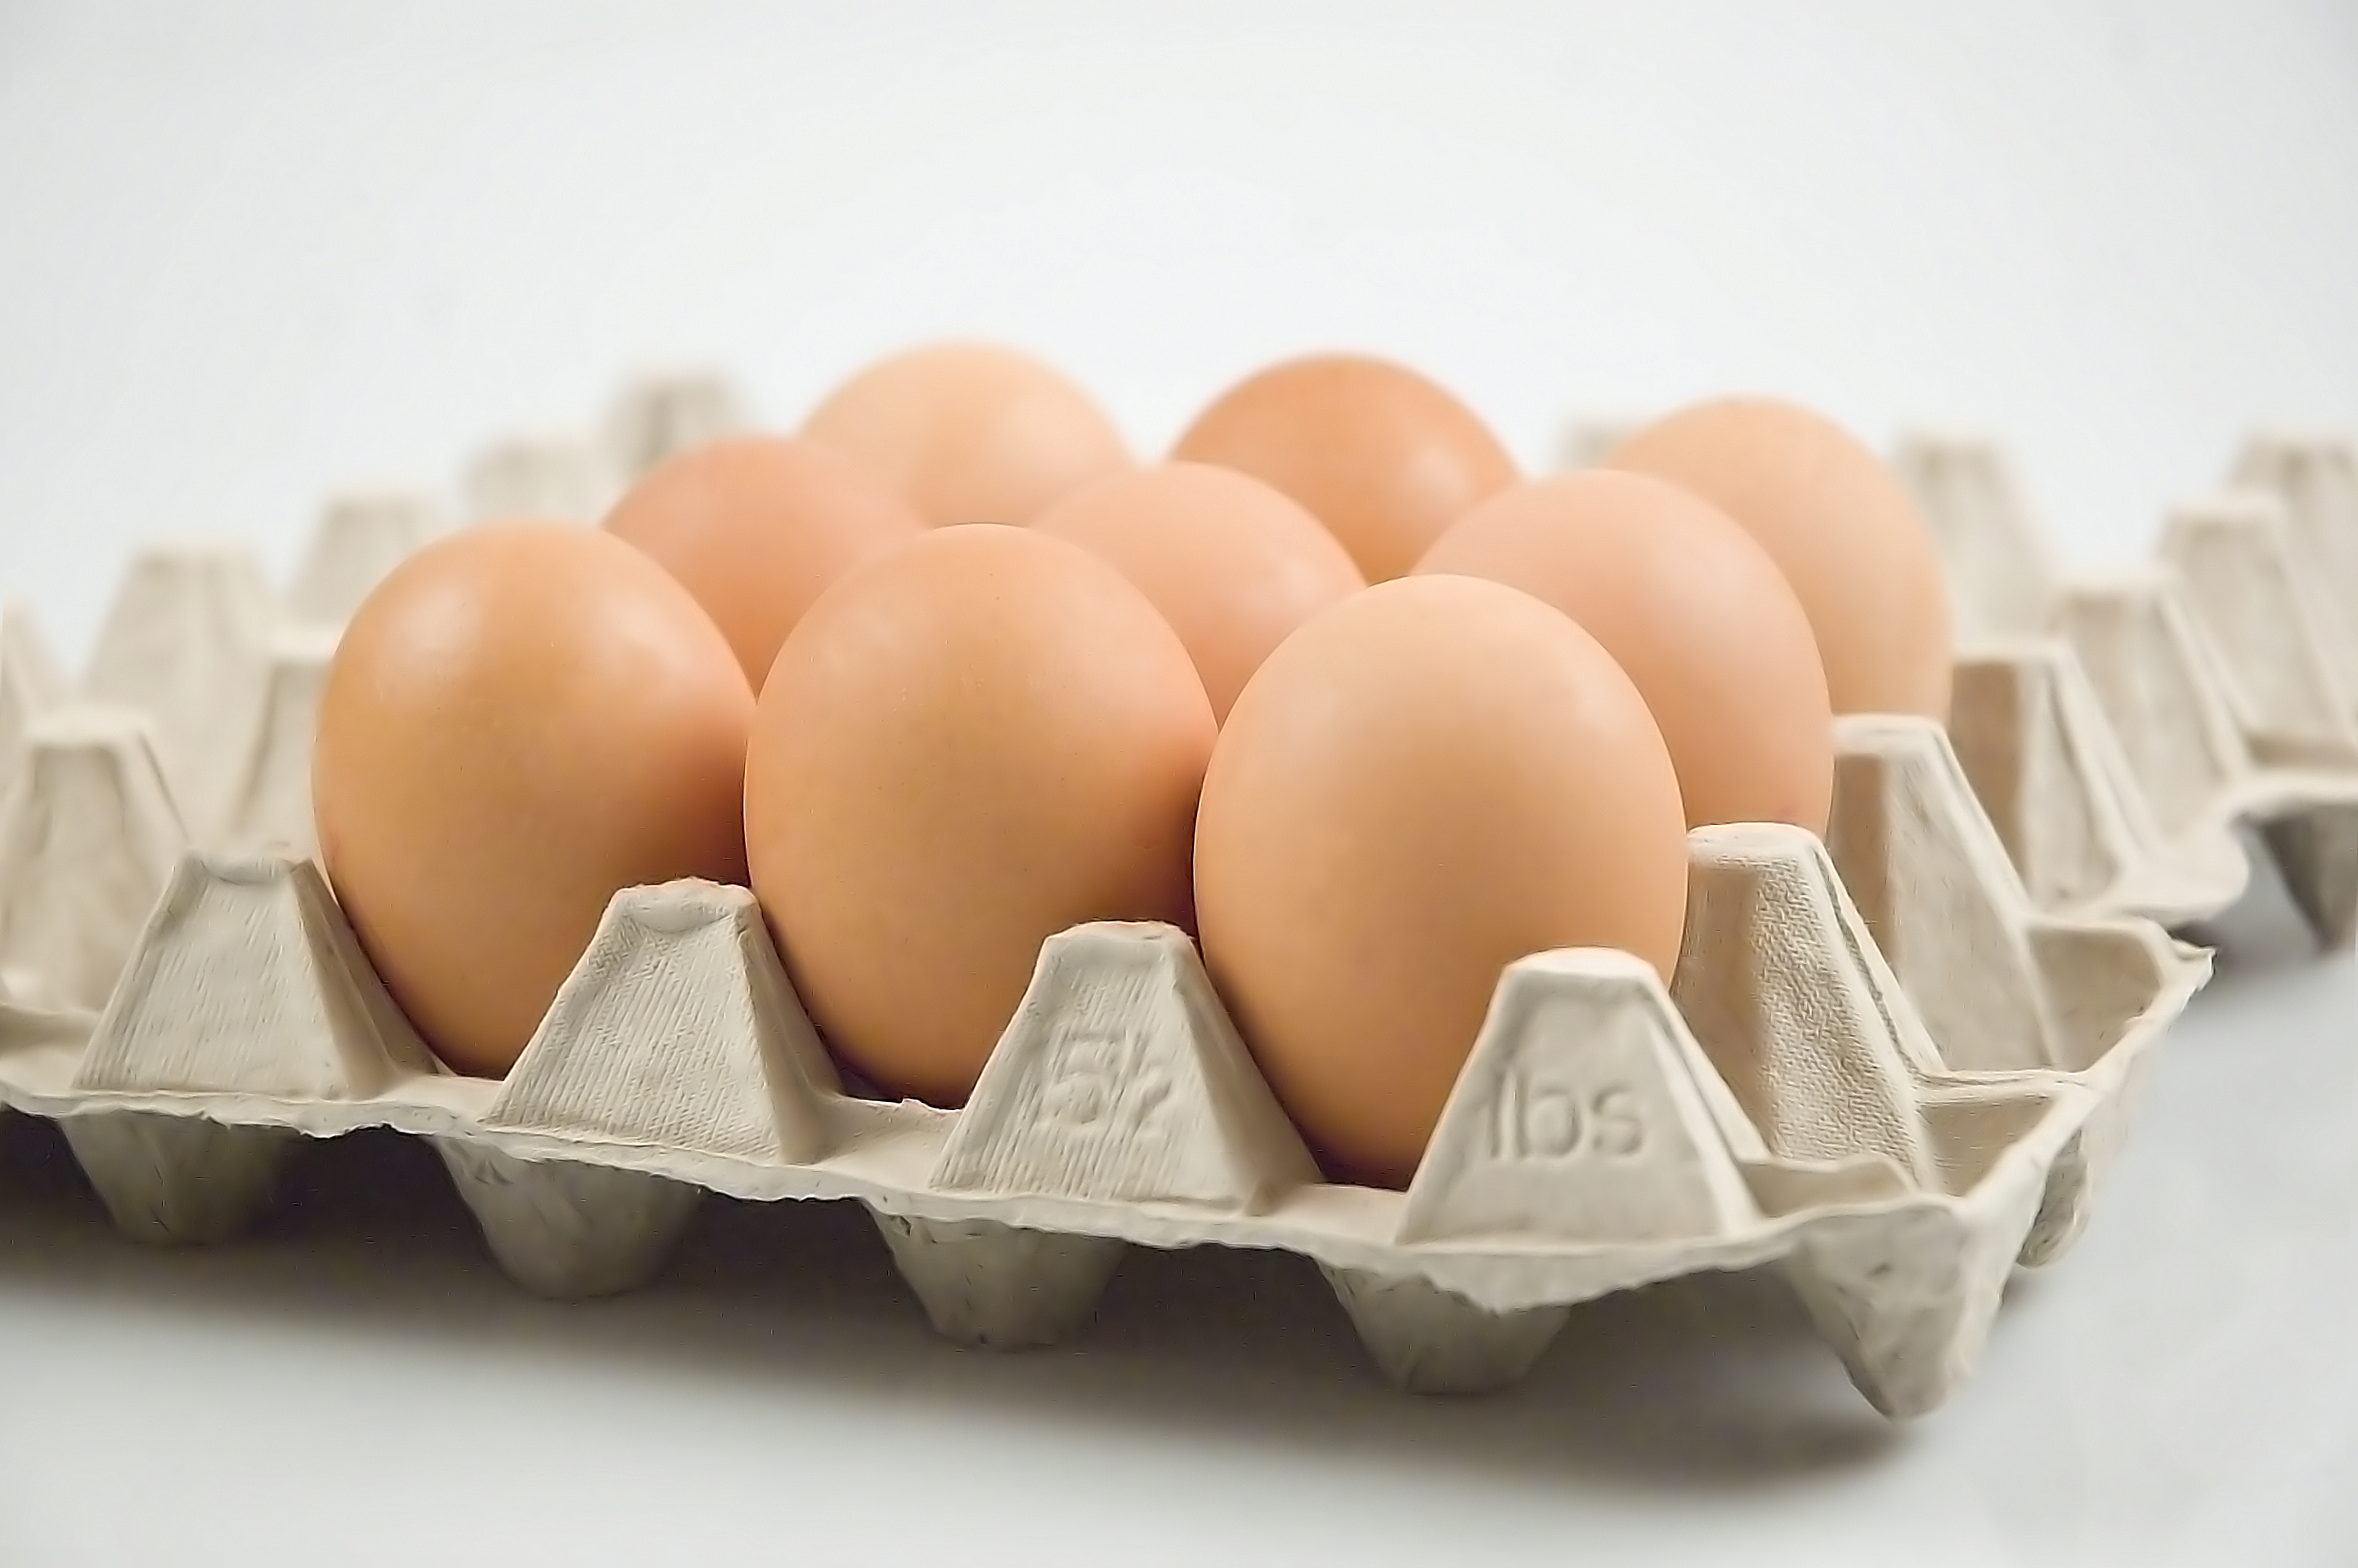 Egg Allergy Information